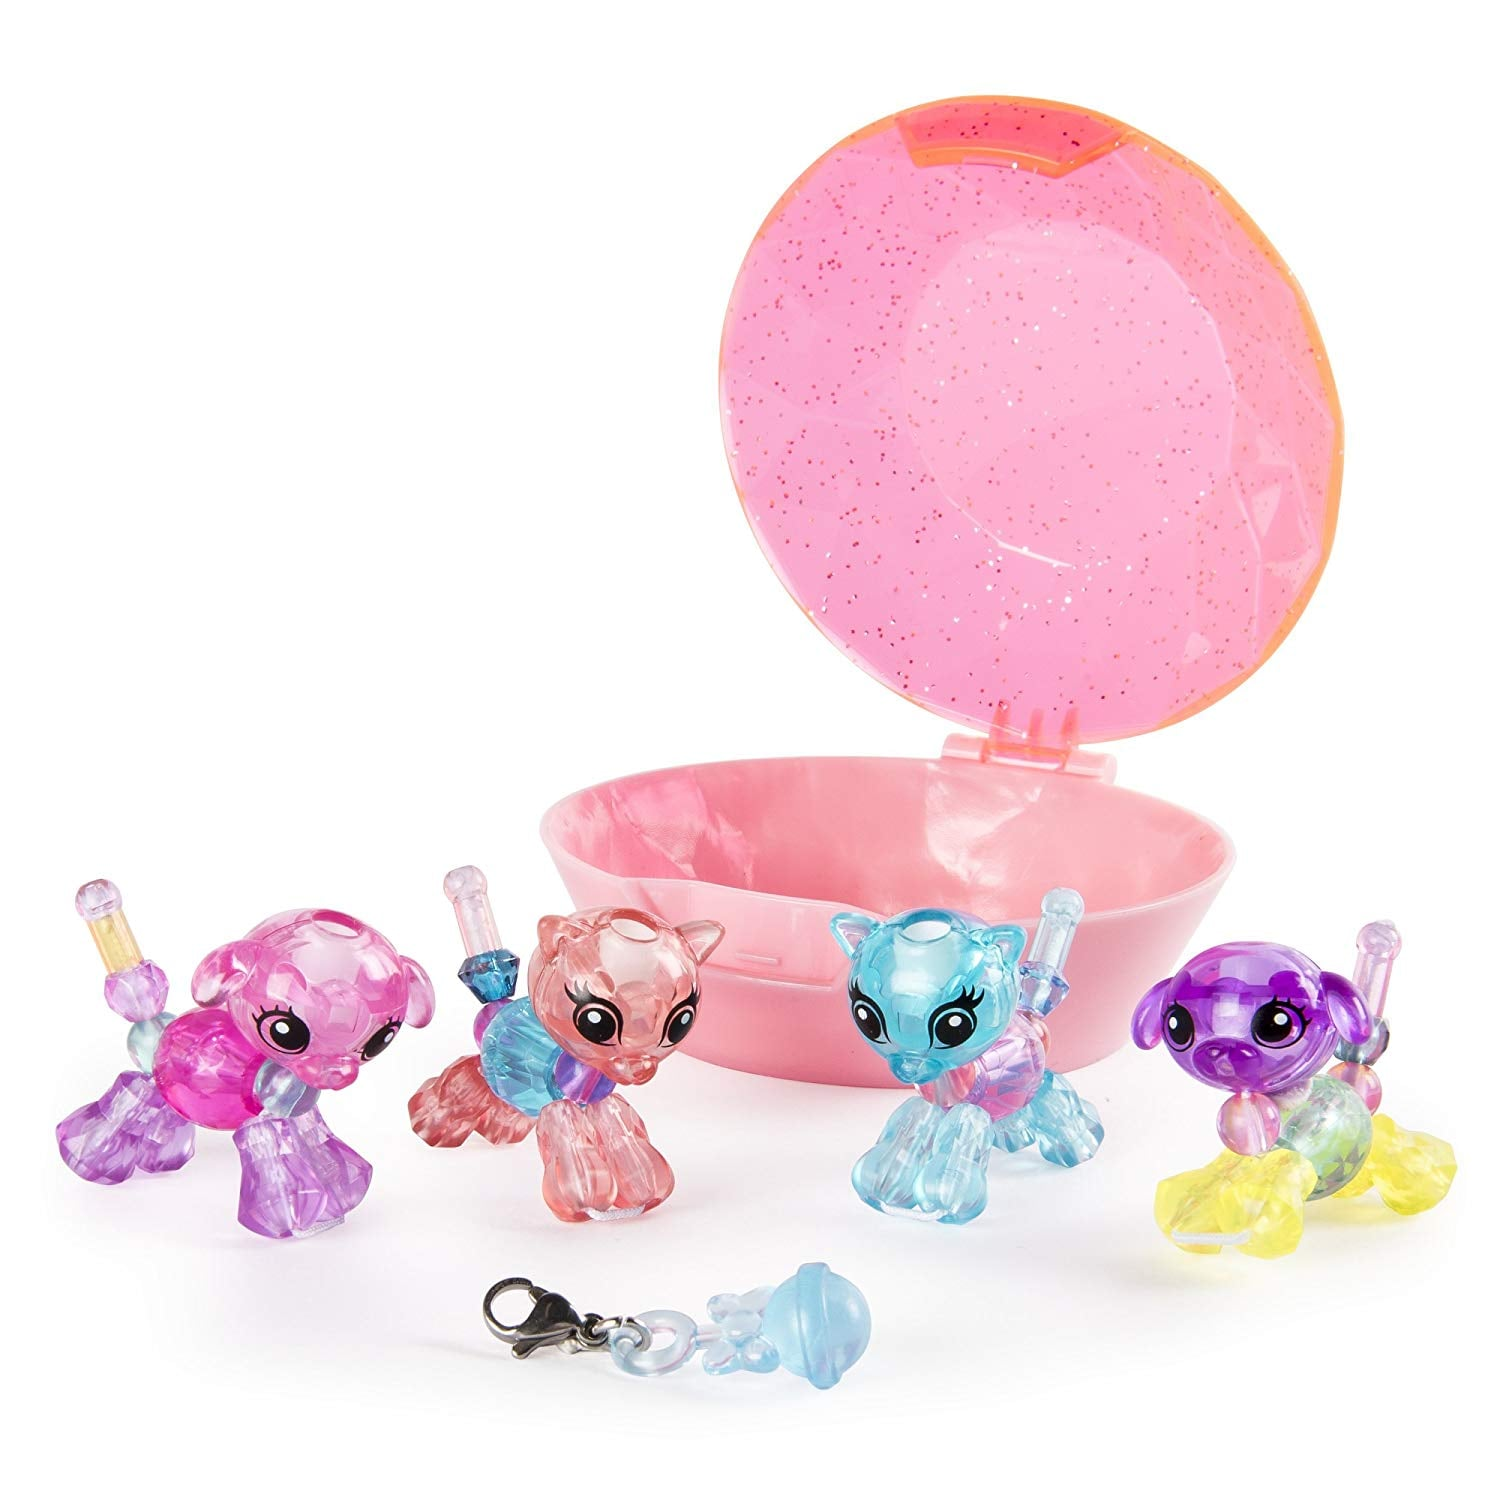 Compatible with Twisty Petz The Box is Not Created by Twisty Petz Pink Life Made Better Toy Playset Figures Organizer